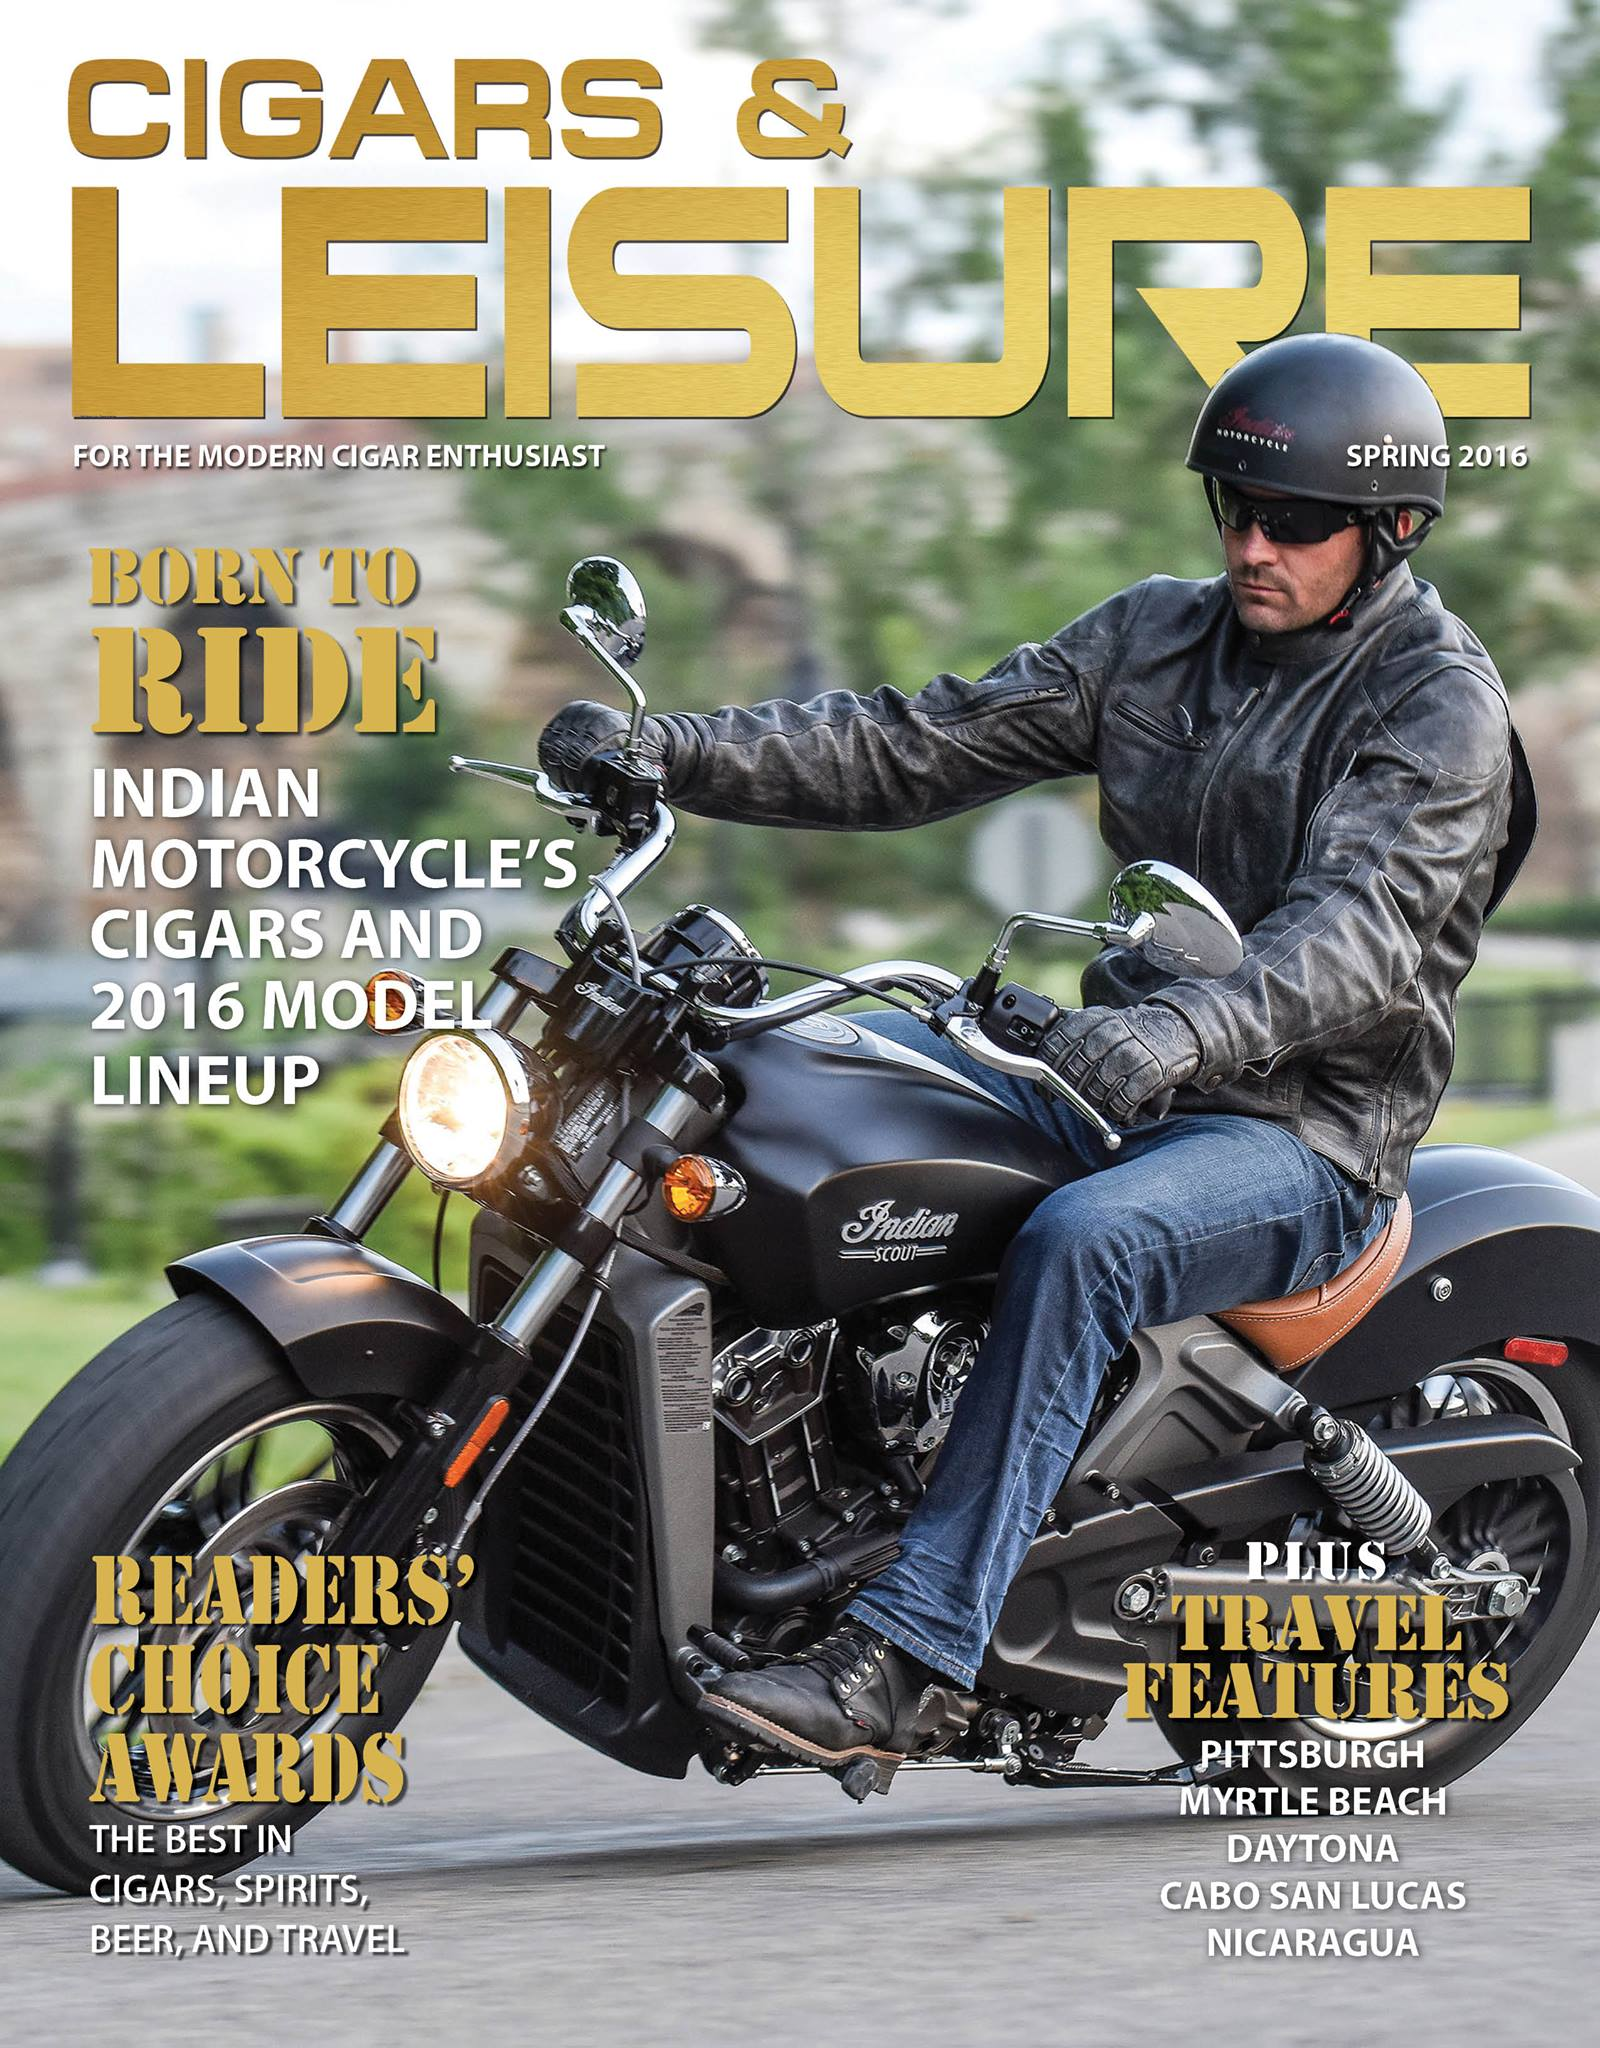 cigar_leisure_magazine_cover_pages_cigarmonkey_9.jpg